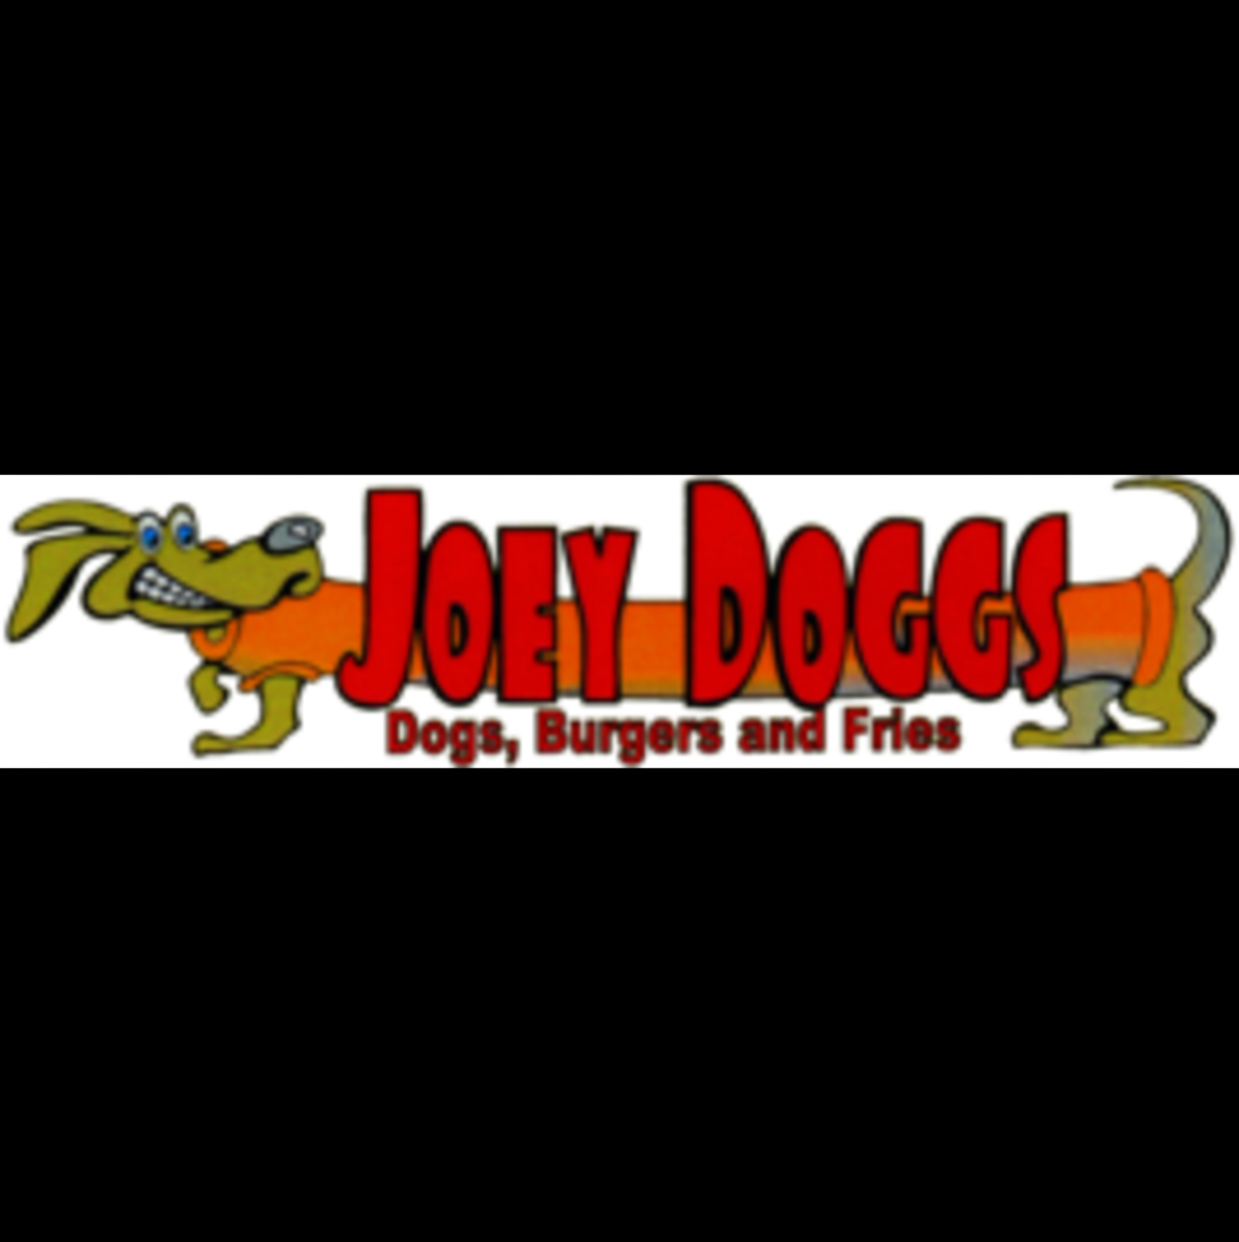 Joey Doggs Burgers And Fries